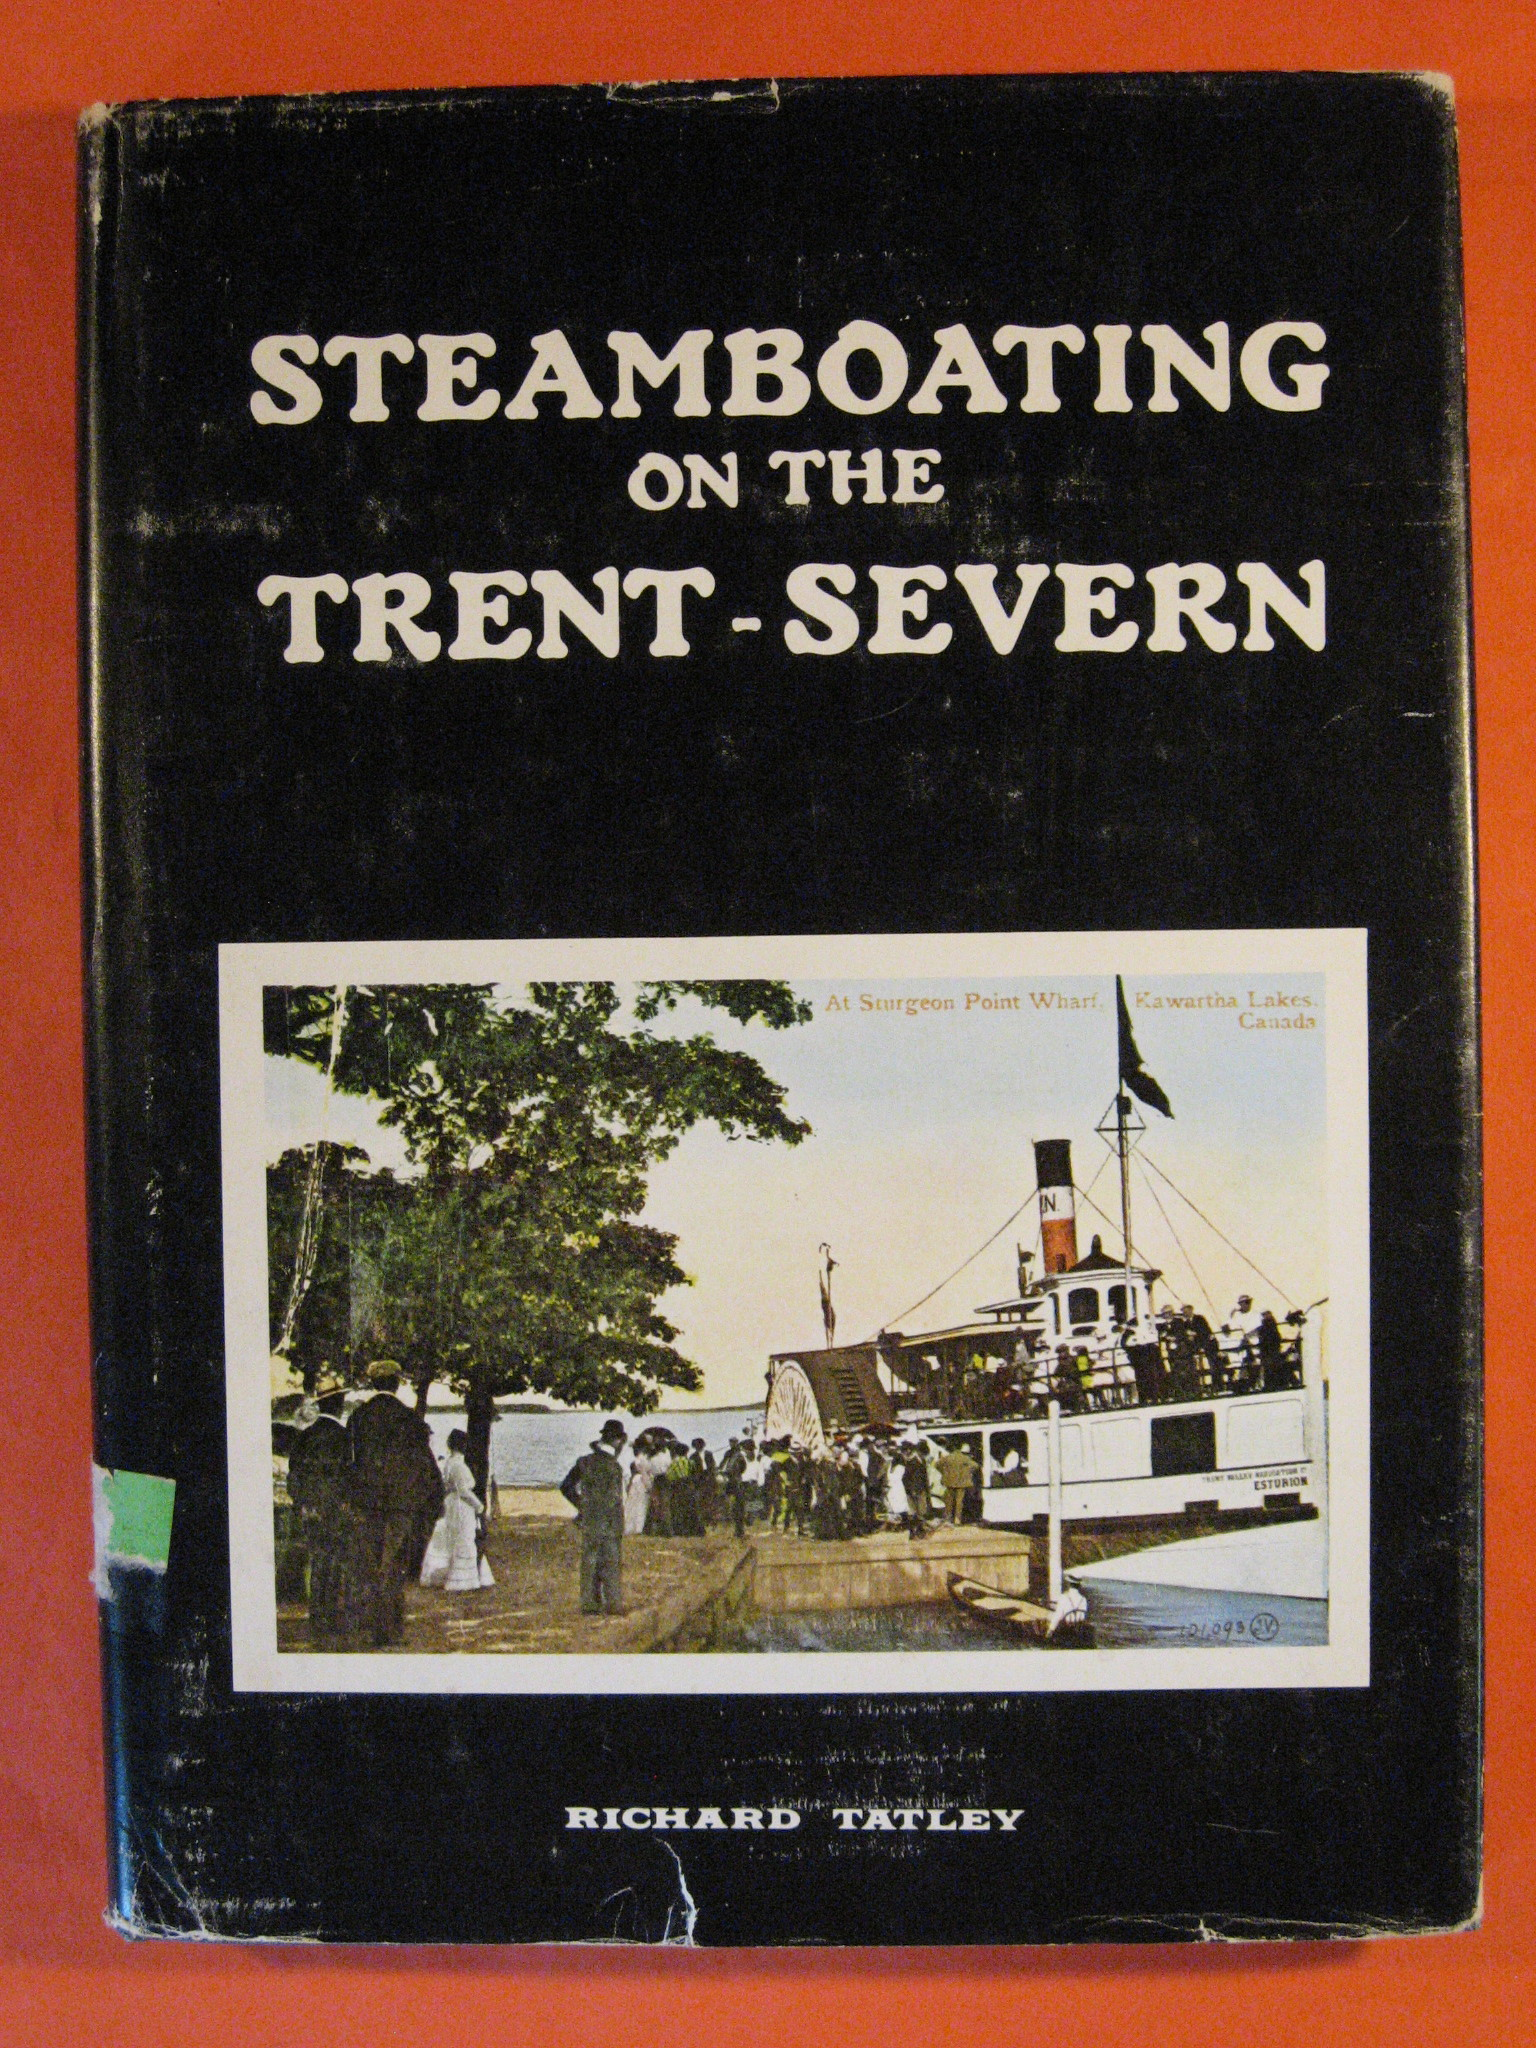 Steamboating on the Trent-Severn, Tatley, Richard